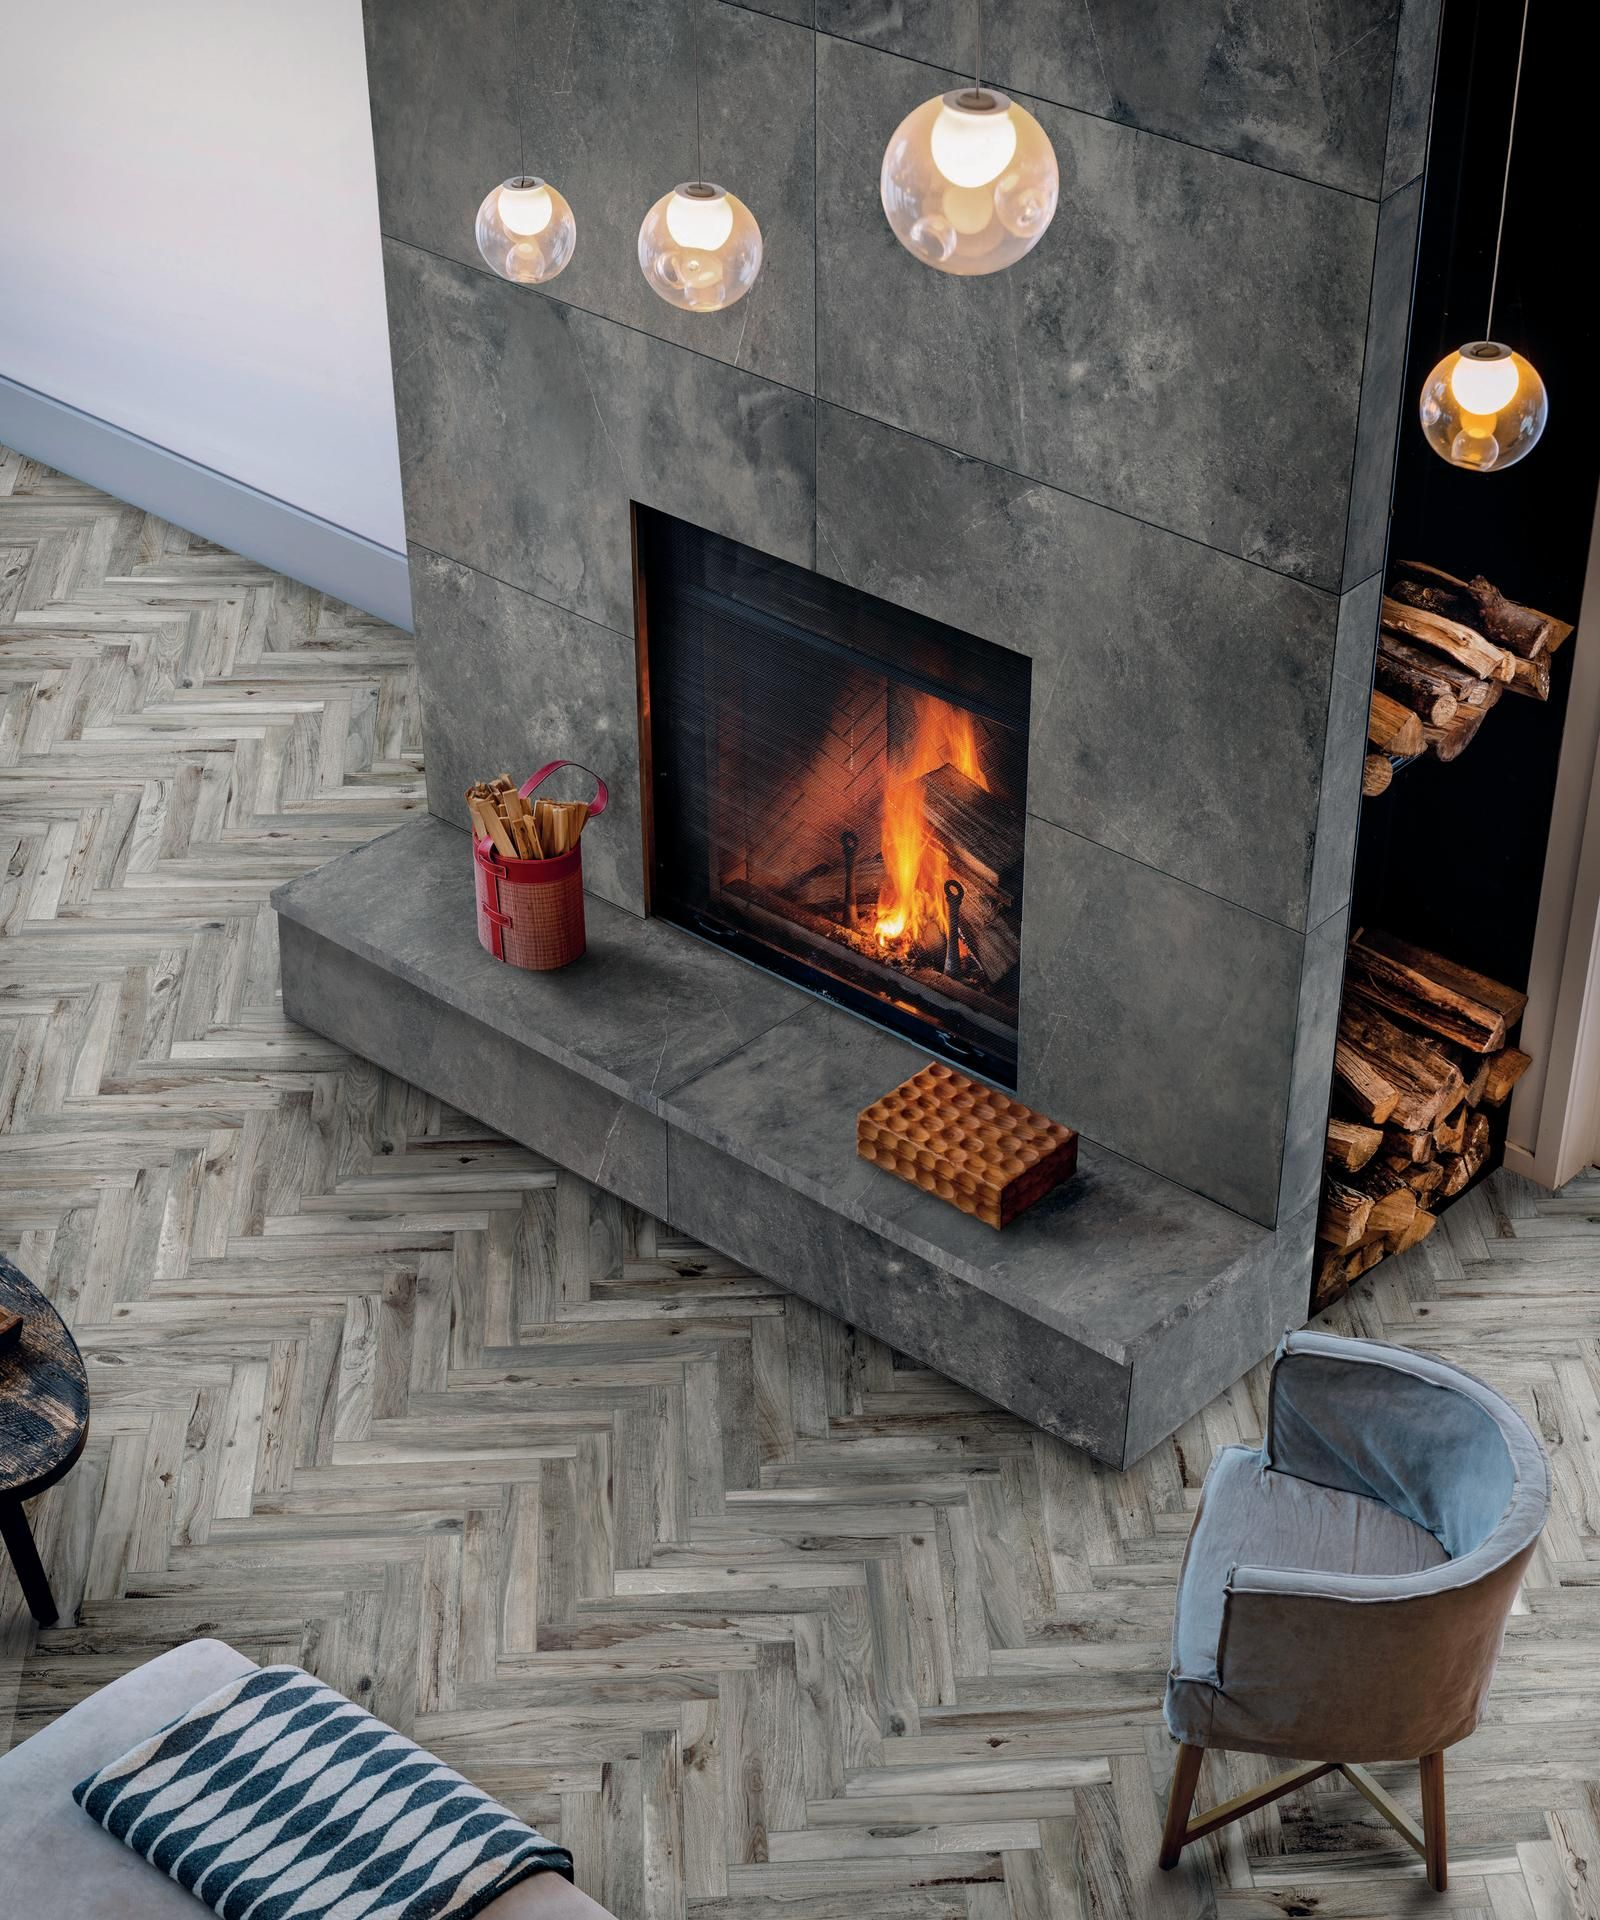 Amazing Tile Fireplace With Herringbone Floor And Glass Pendants